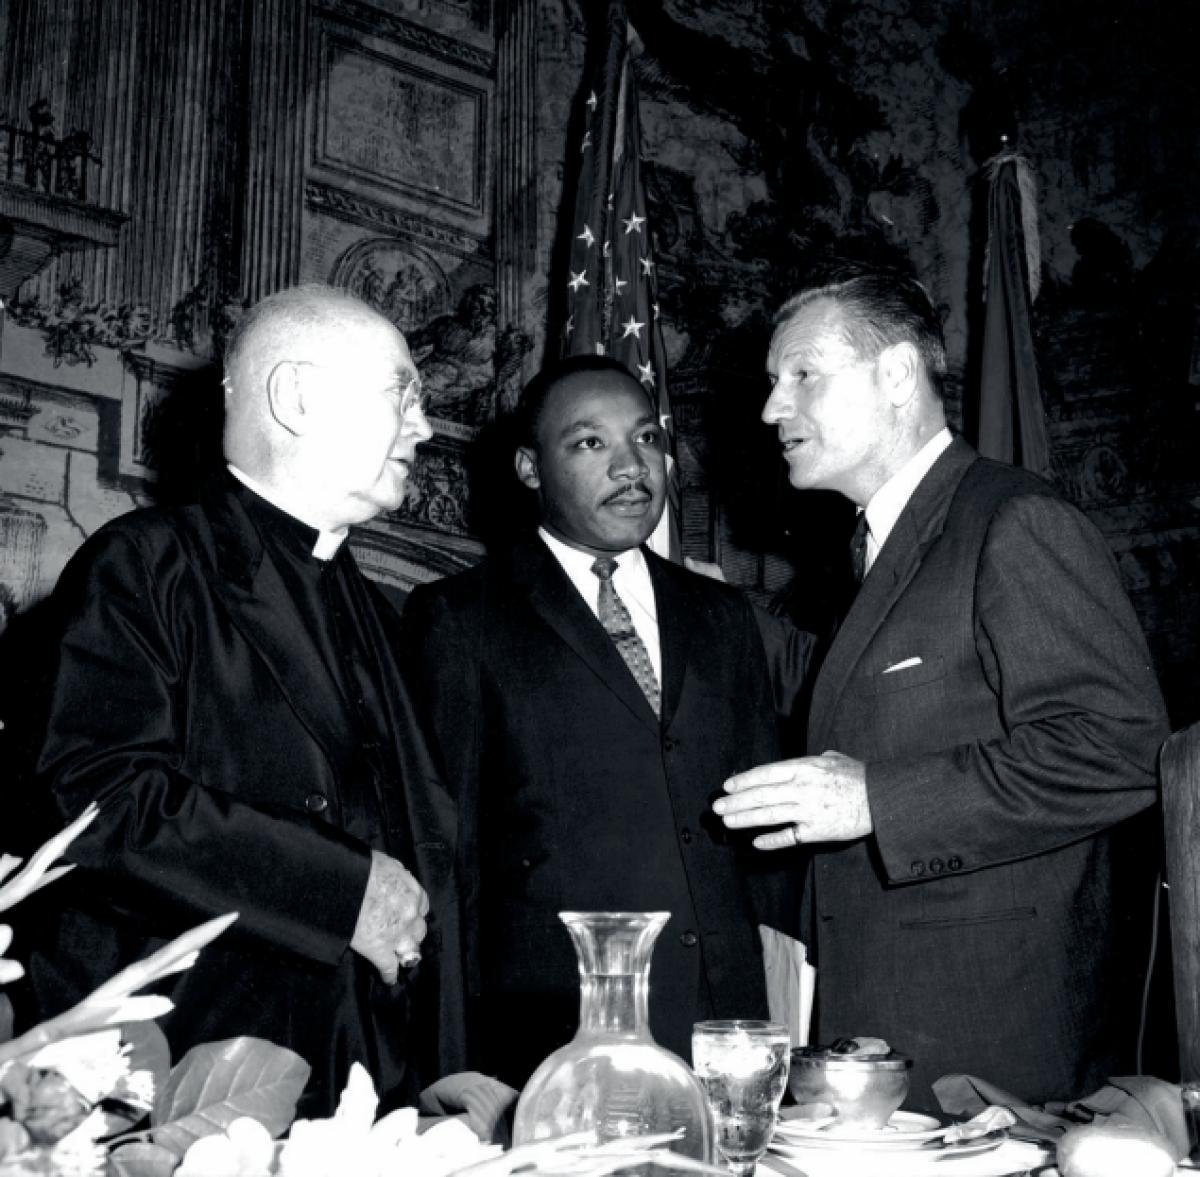 Nelson Rockefeller invited King to speak and is pictured with King at the hotel along with Cardinal Francis Spellman on the left.